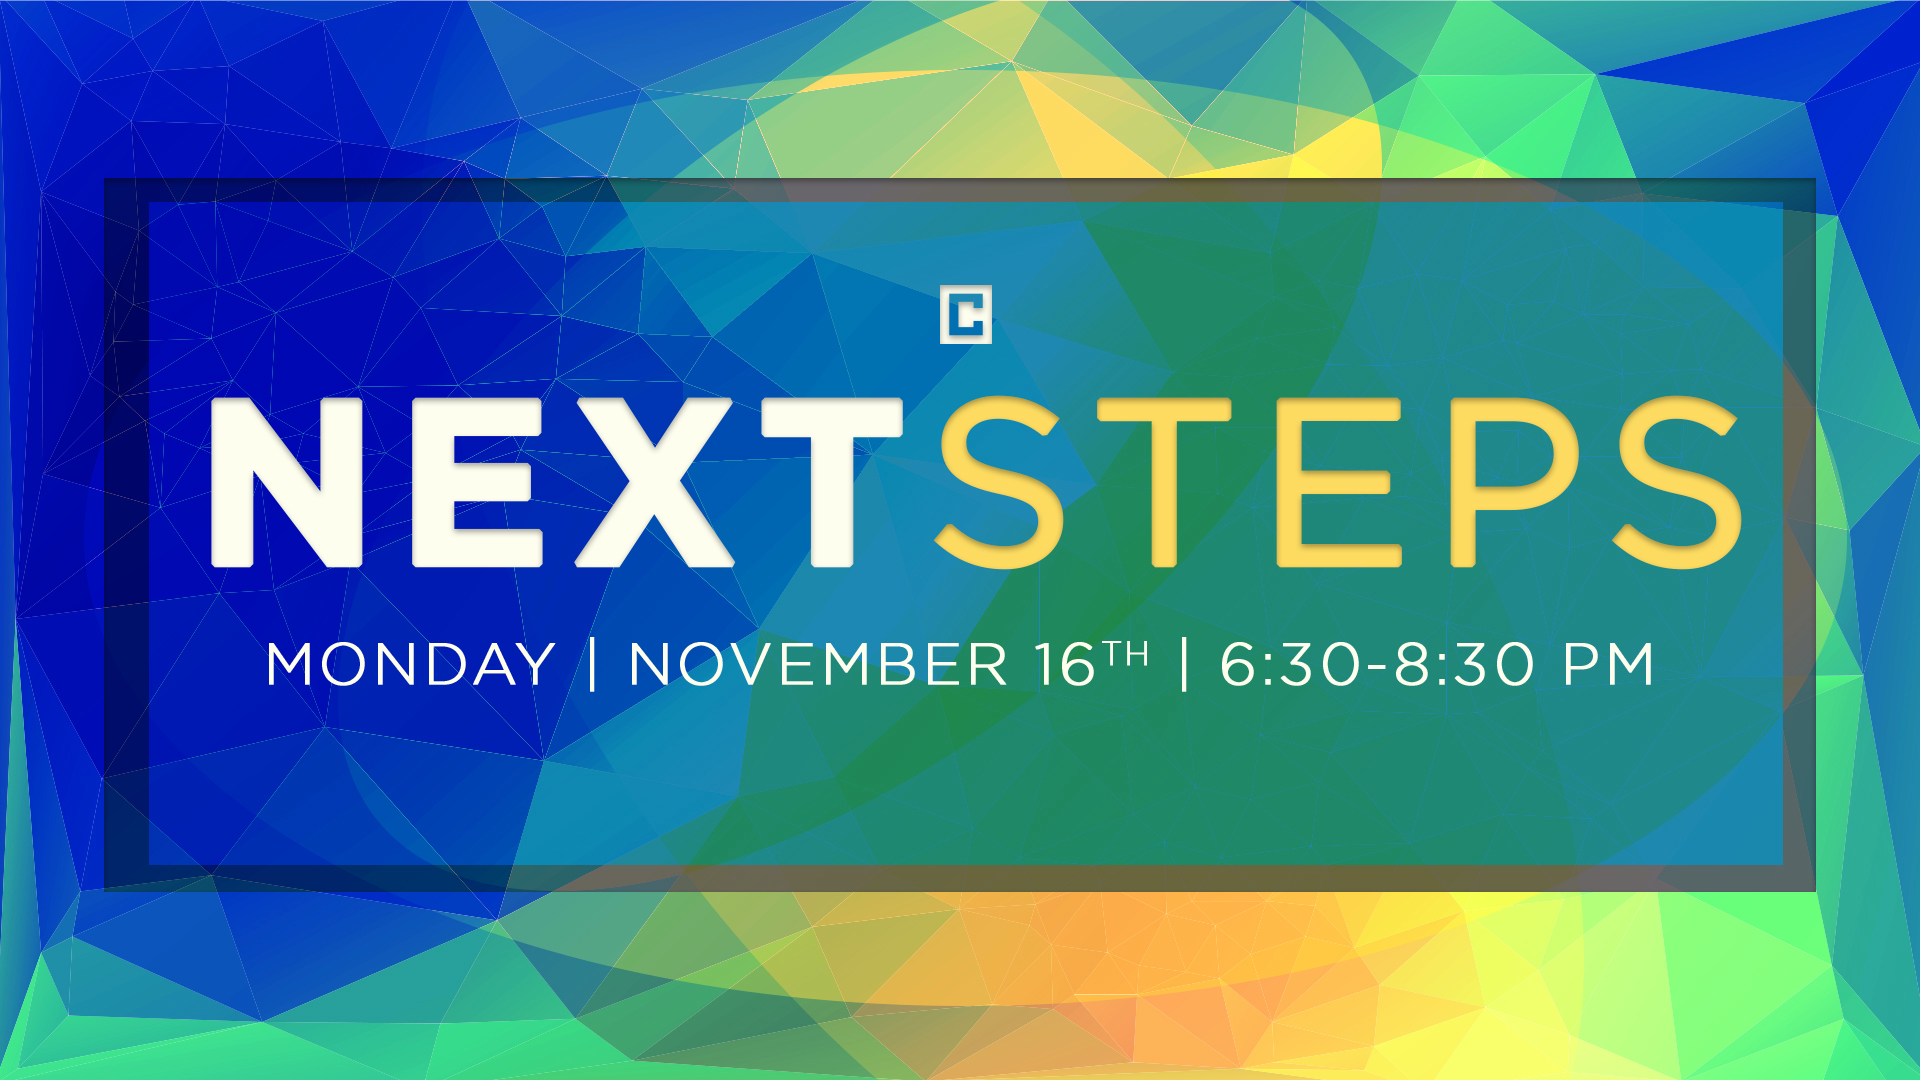 NEXT STEPS - November 16  -  6:30-8:30 PM    Next Steps  is a process we've designed specifically to help you connect with Crossbridge. At  Next Steps  you'll have a chance to meet staff, learn about what kind of church we are and how to take your next step in getting connected at Crossbridge and growing as a follower of Jesus. Childcare is available (birth-5th grade) with a reservation. We'll serve the best meal you have ever had (okay it may not be the best but it will be good!) Email  HERE  to make a reservation for the class and childcare.